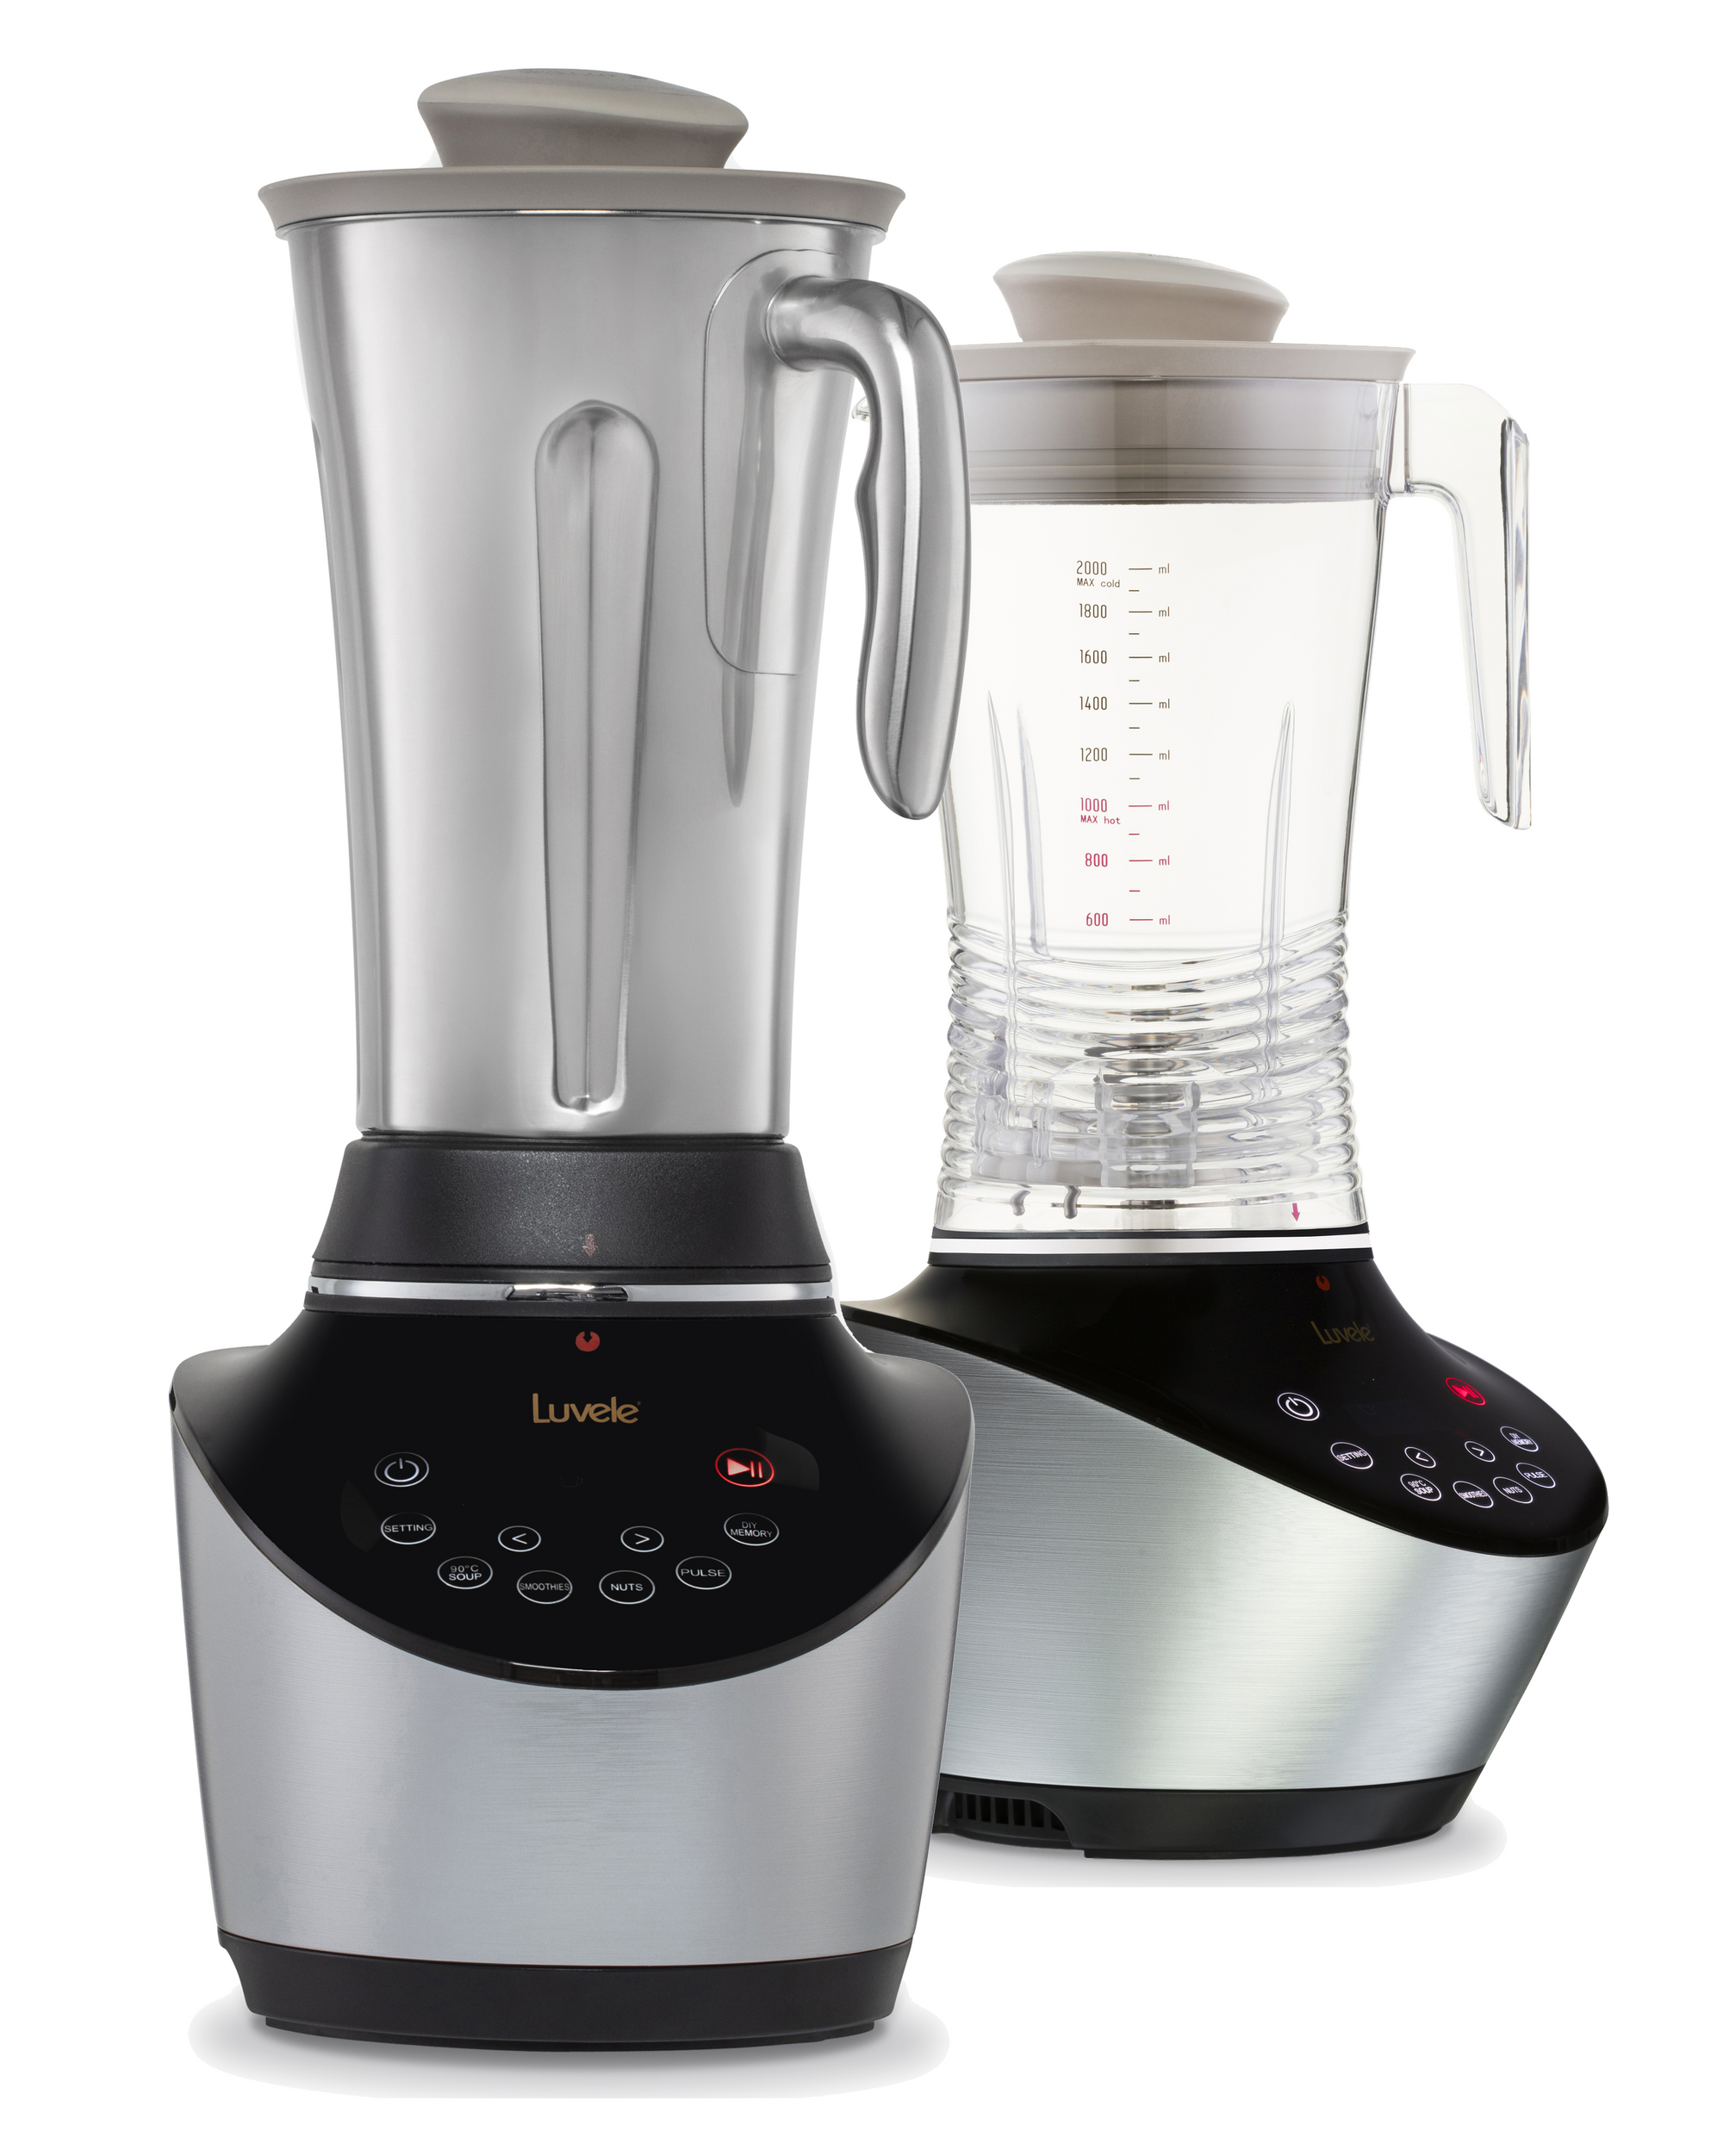 luvele-eu - Luvele Vibe Blender System | Premium High Speed Blender